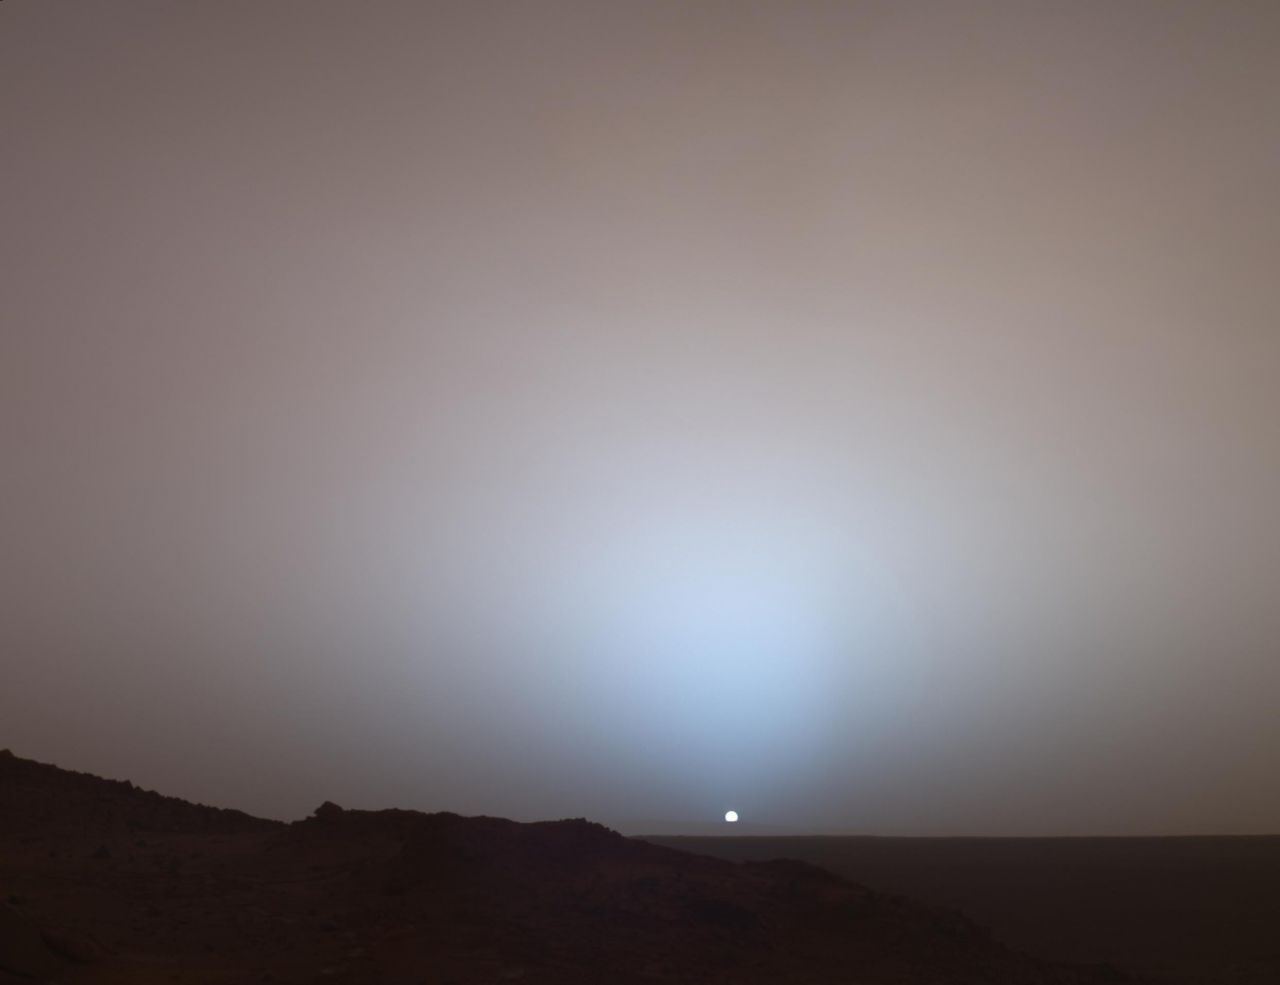 Mars Exploration Rover Spirit captures a stunning view as the sun sinks below the rim of the Gusev crater on Mars on May 19, 2005.